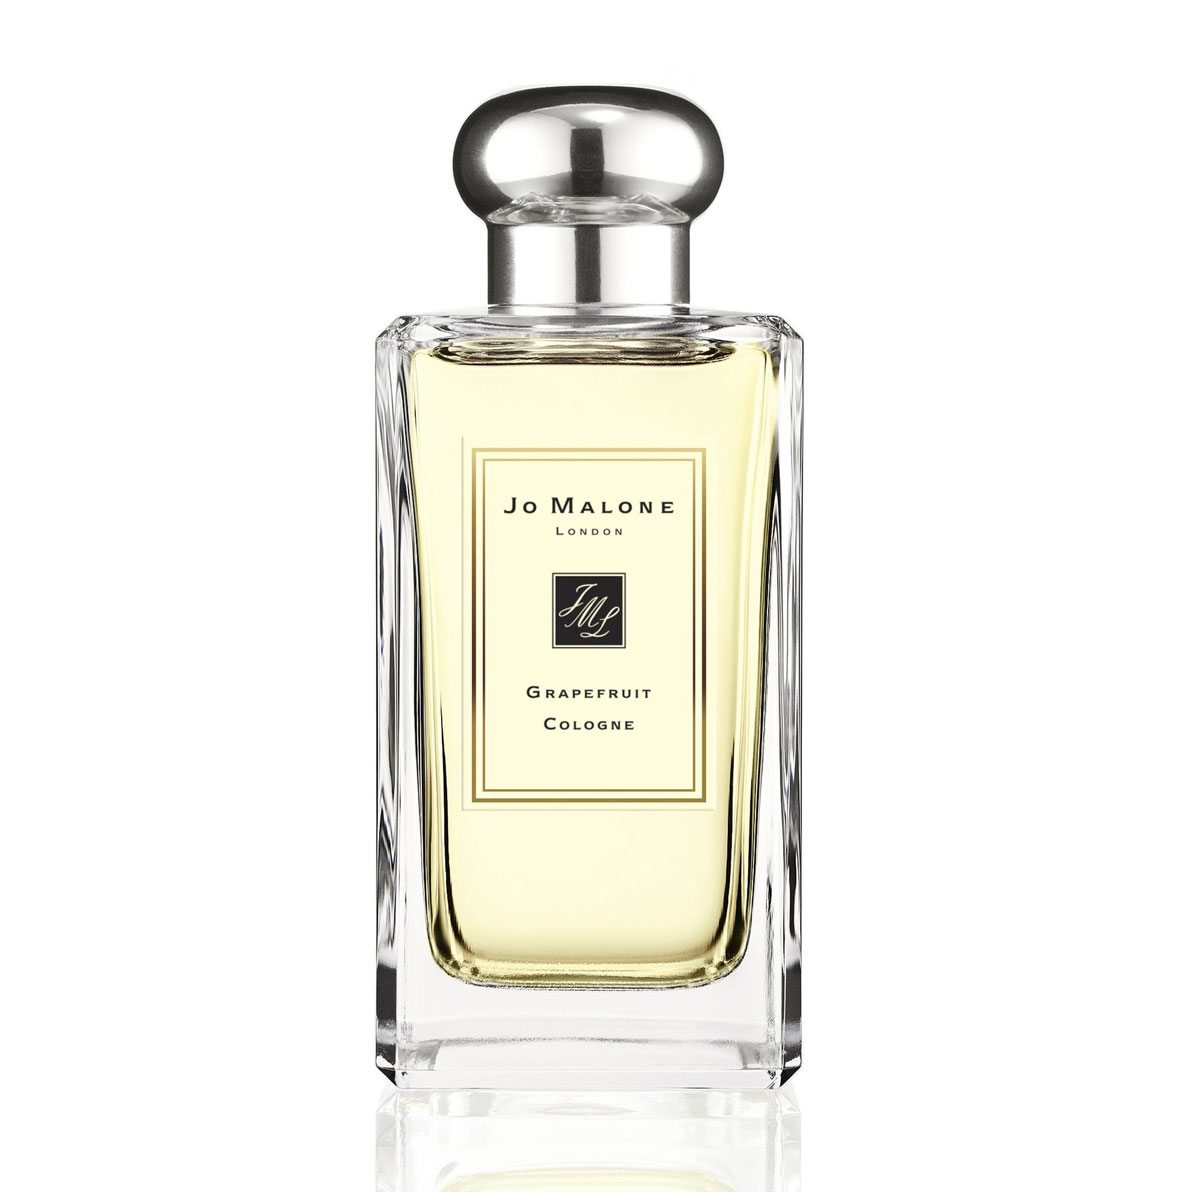 Jo Malone Grapefruit 100ml